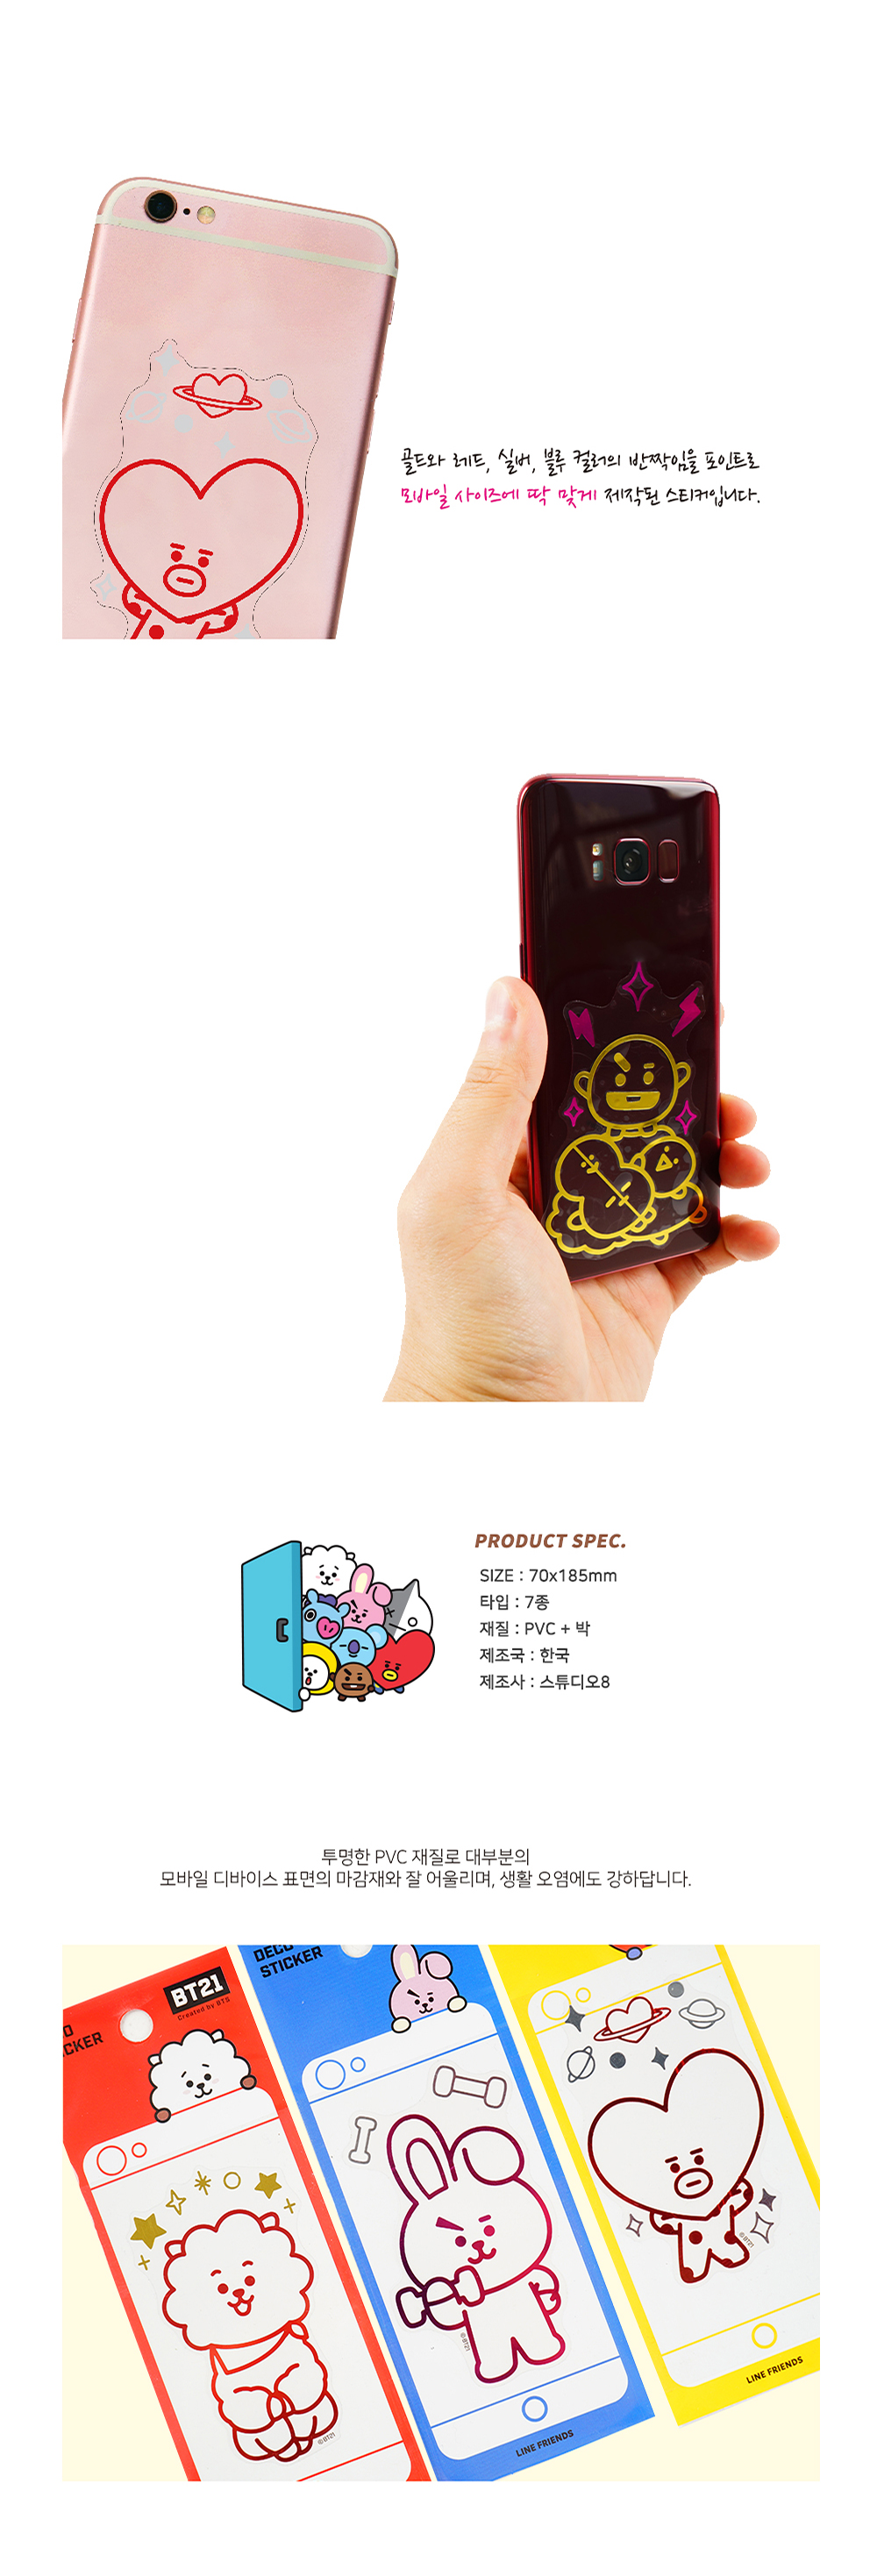 bt21_kf_decostickermobile_02.jpg